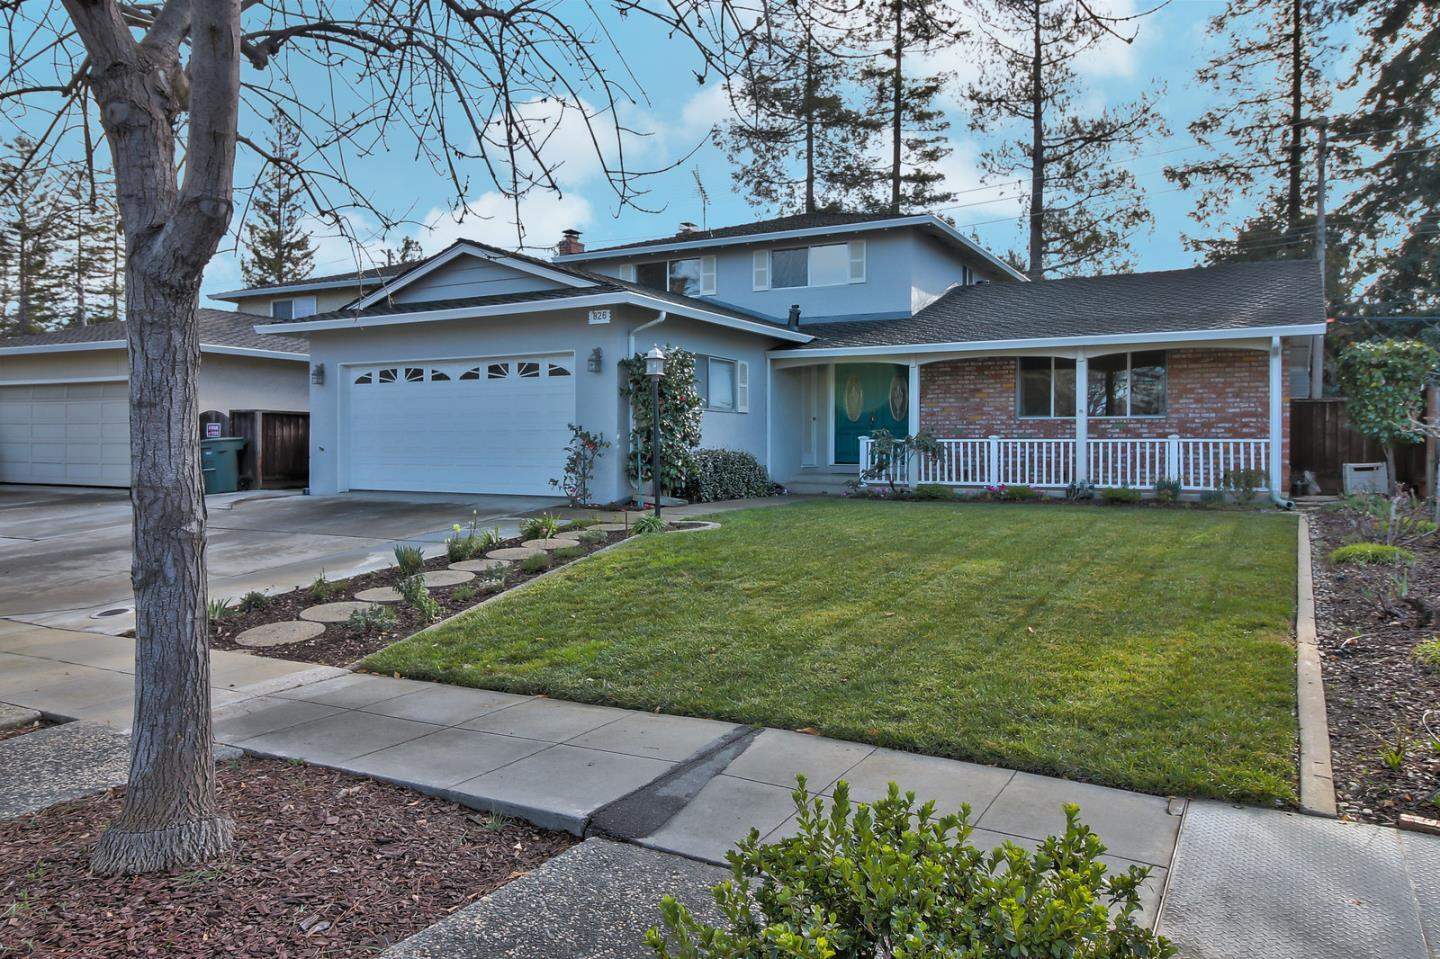 Local Real Estate: Open Houses for Sale — Sunnyvale, CA — Coldwell ...